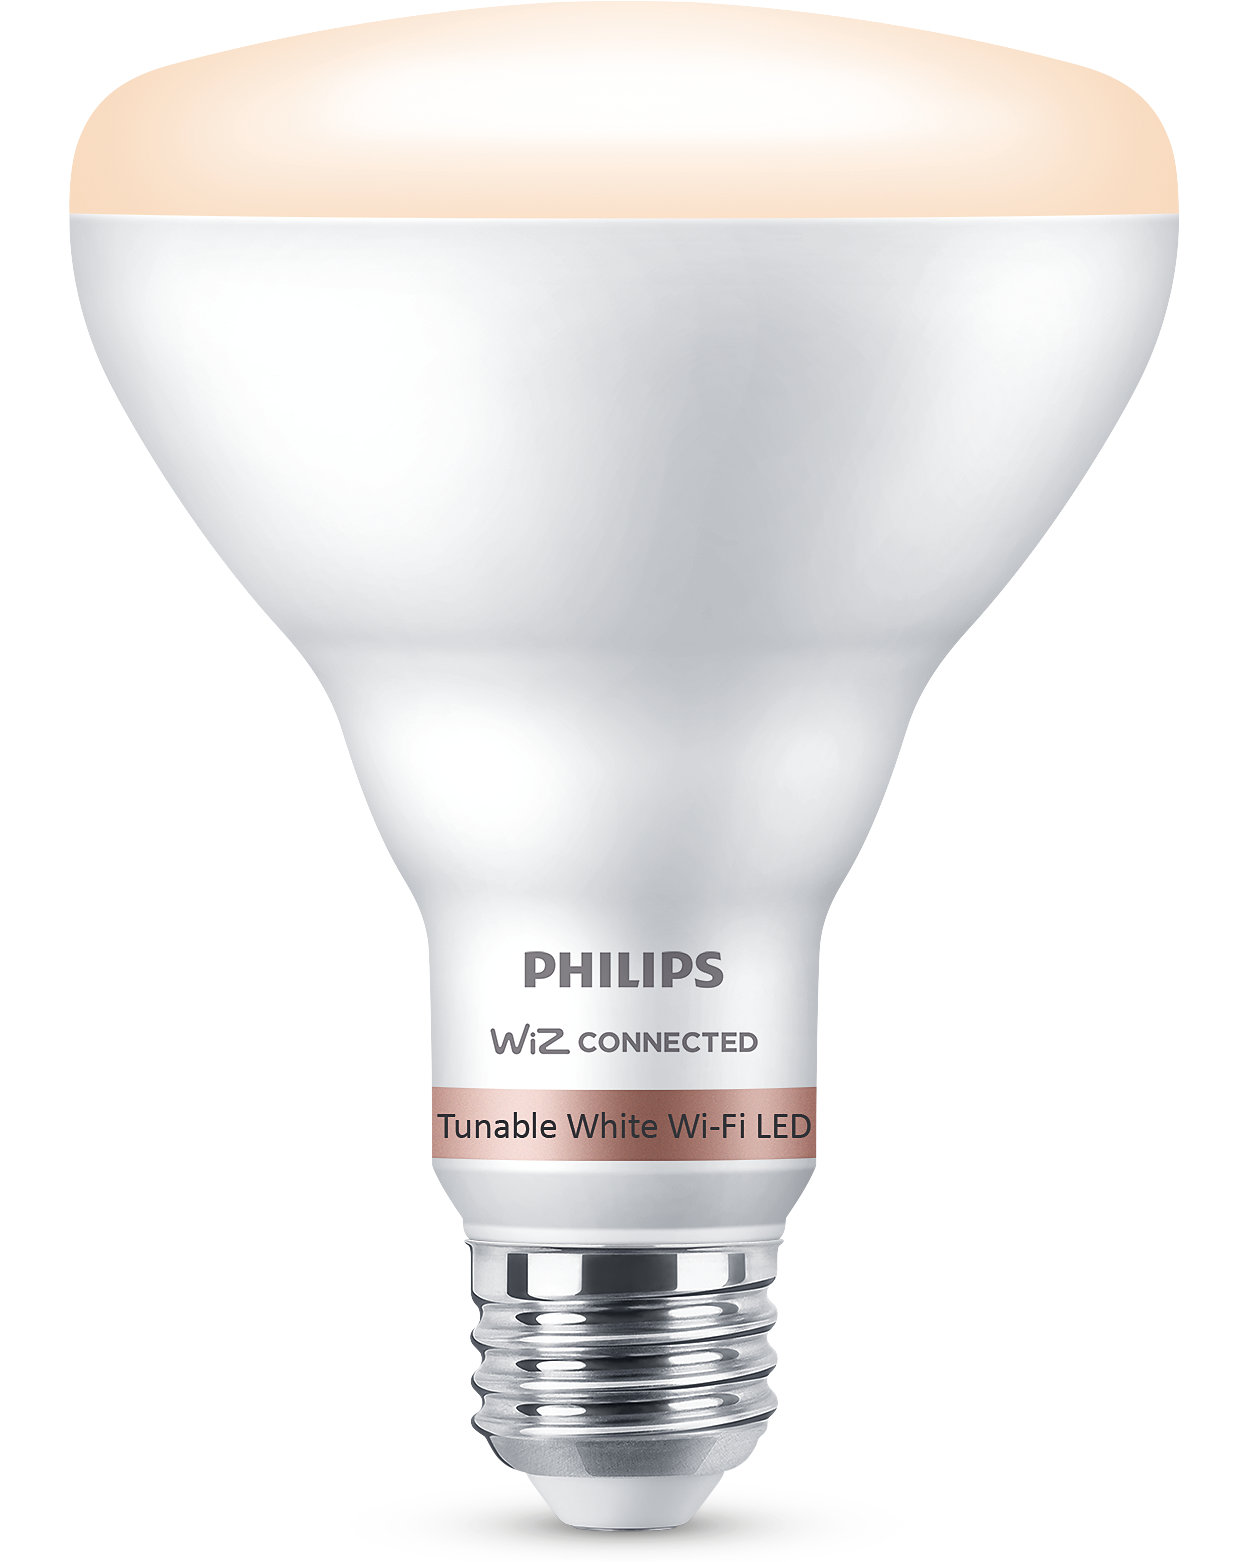 Easy-to-use smart tunable white bulb